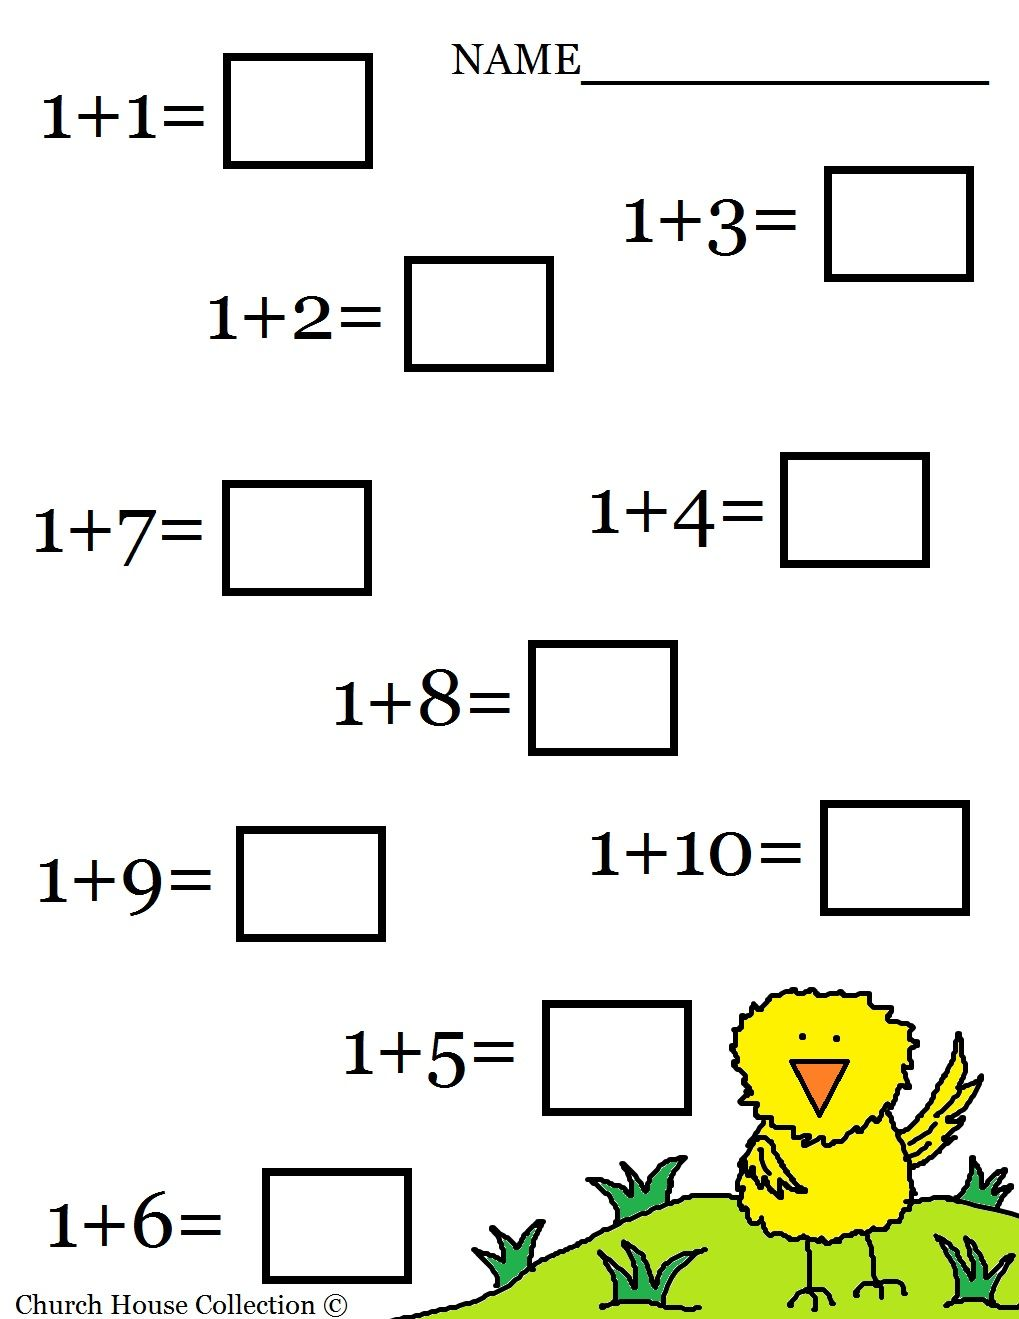 Aldiablosus  Surprising  Images About Worksheets  Math On Pinterest  Math Sheets  With Fetching  Images About Worksheets  Math On Pinterest  Math Sheets Math Worksheets For Kindergarten And Simple Addition With Delightful Urdu Writing Worksheets Also Year  Science Worksheets In Addition What Is Worksheet In Computer And Puzzling Plates Worksheet As Well As Common Multiple Worksheet Additionally Mass And Count Nouns Worksheets From Pinterestcom With Aldiablosus  Fetching  Images About Worksheets  Math On Pinterest  Math Sheets  With Delightful  Images About Worksheets  Math On Pinterest  Math Sheets Math Worksheets For Kindergarten And Simple Addition And Surprising Urdu Writing Worksheets Also Year  Science Worksheets In Addition What Is Worksheet In Computer From Pinterestcom